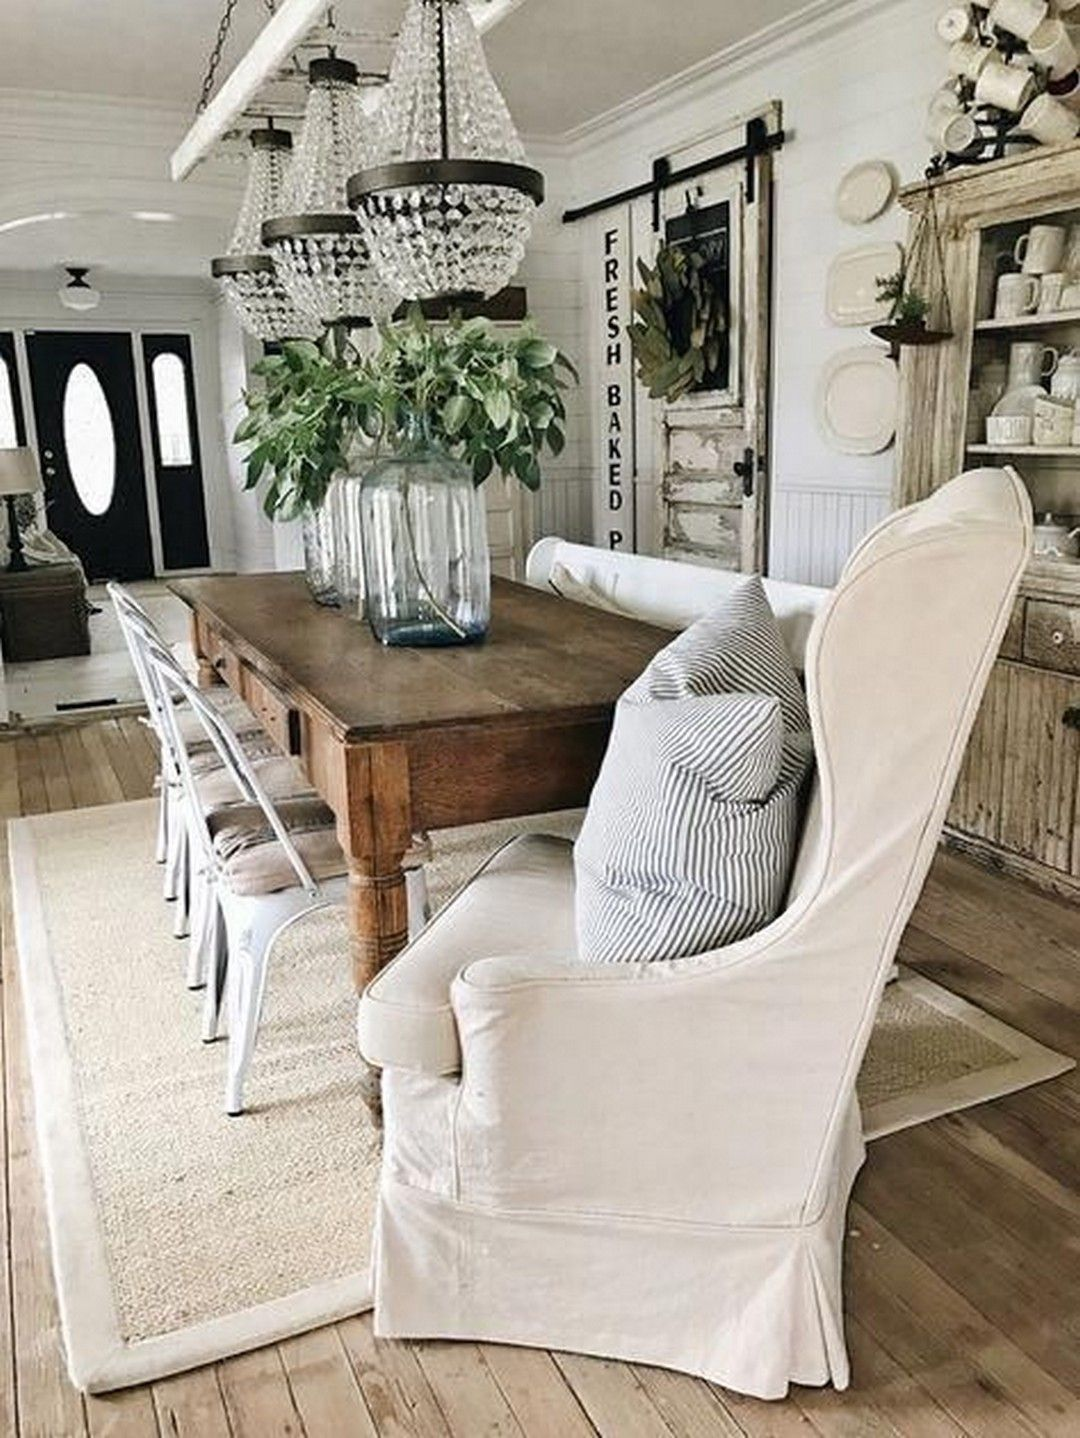 43 Farmhouse Decor From Ikea For Spring French Country Dining Room Country Dining Rooms Farmhouse Dining Rooms Decor